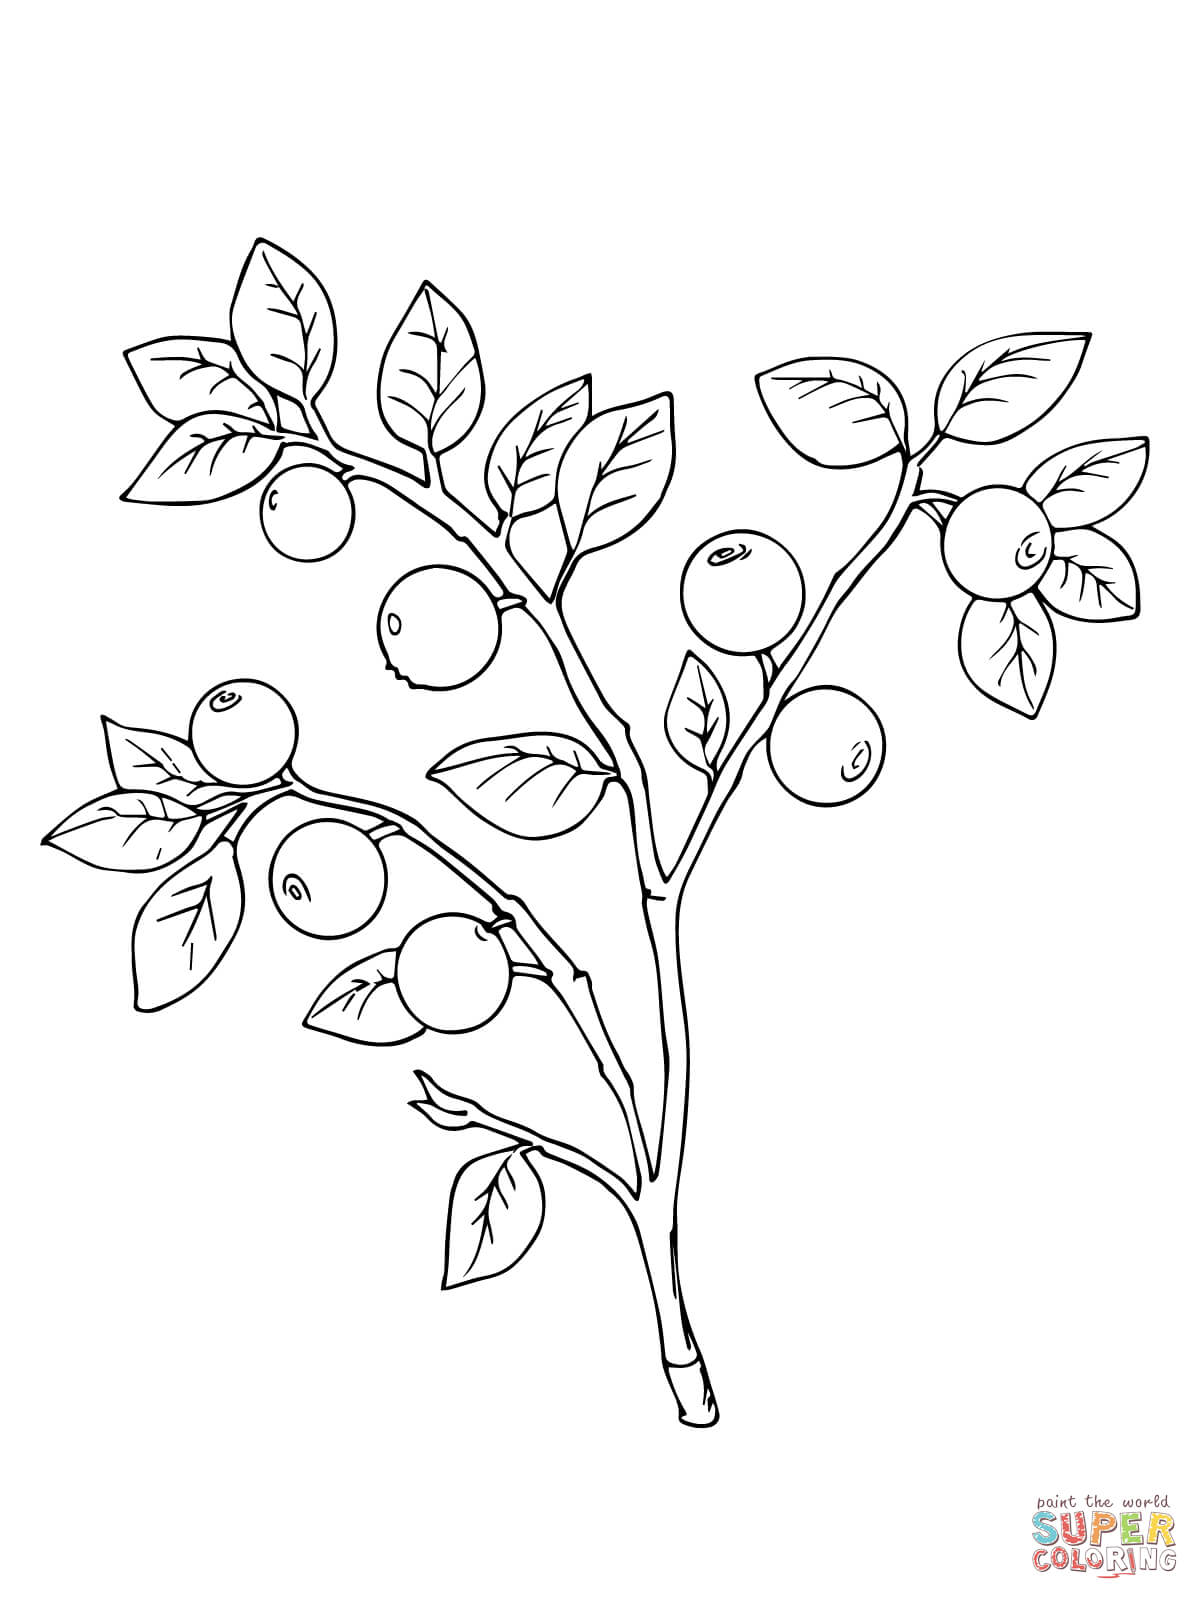 Bilberry Or Whortleberry Coloring Page